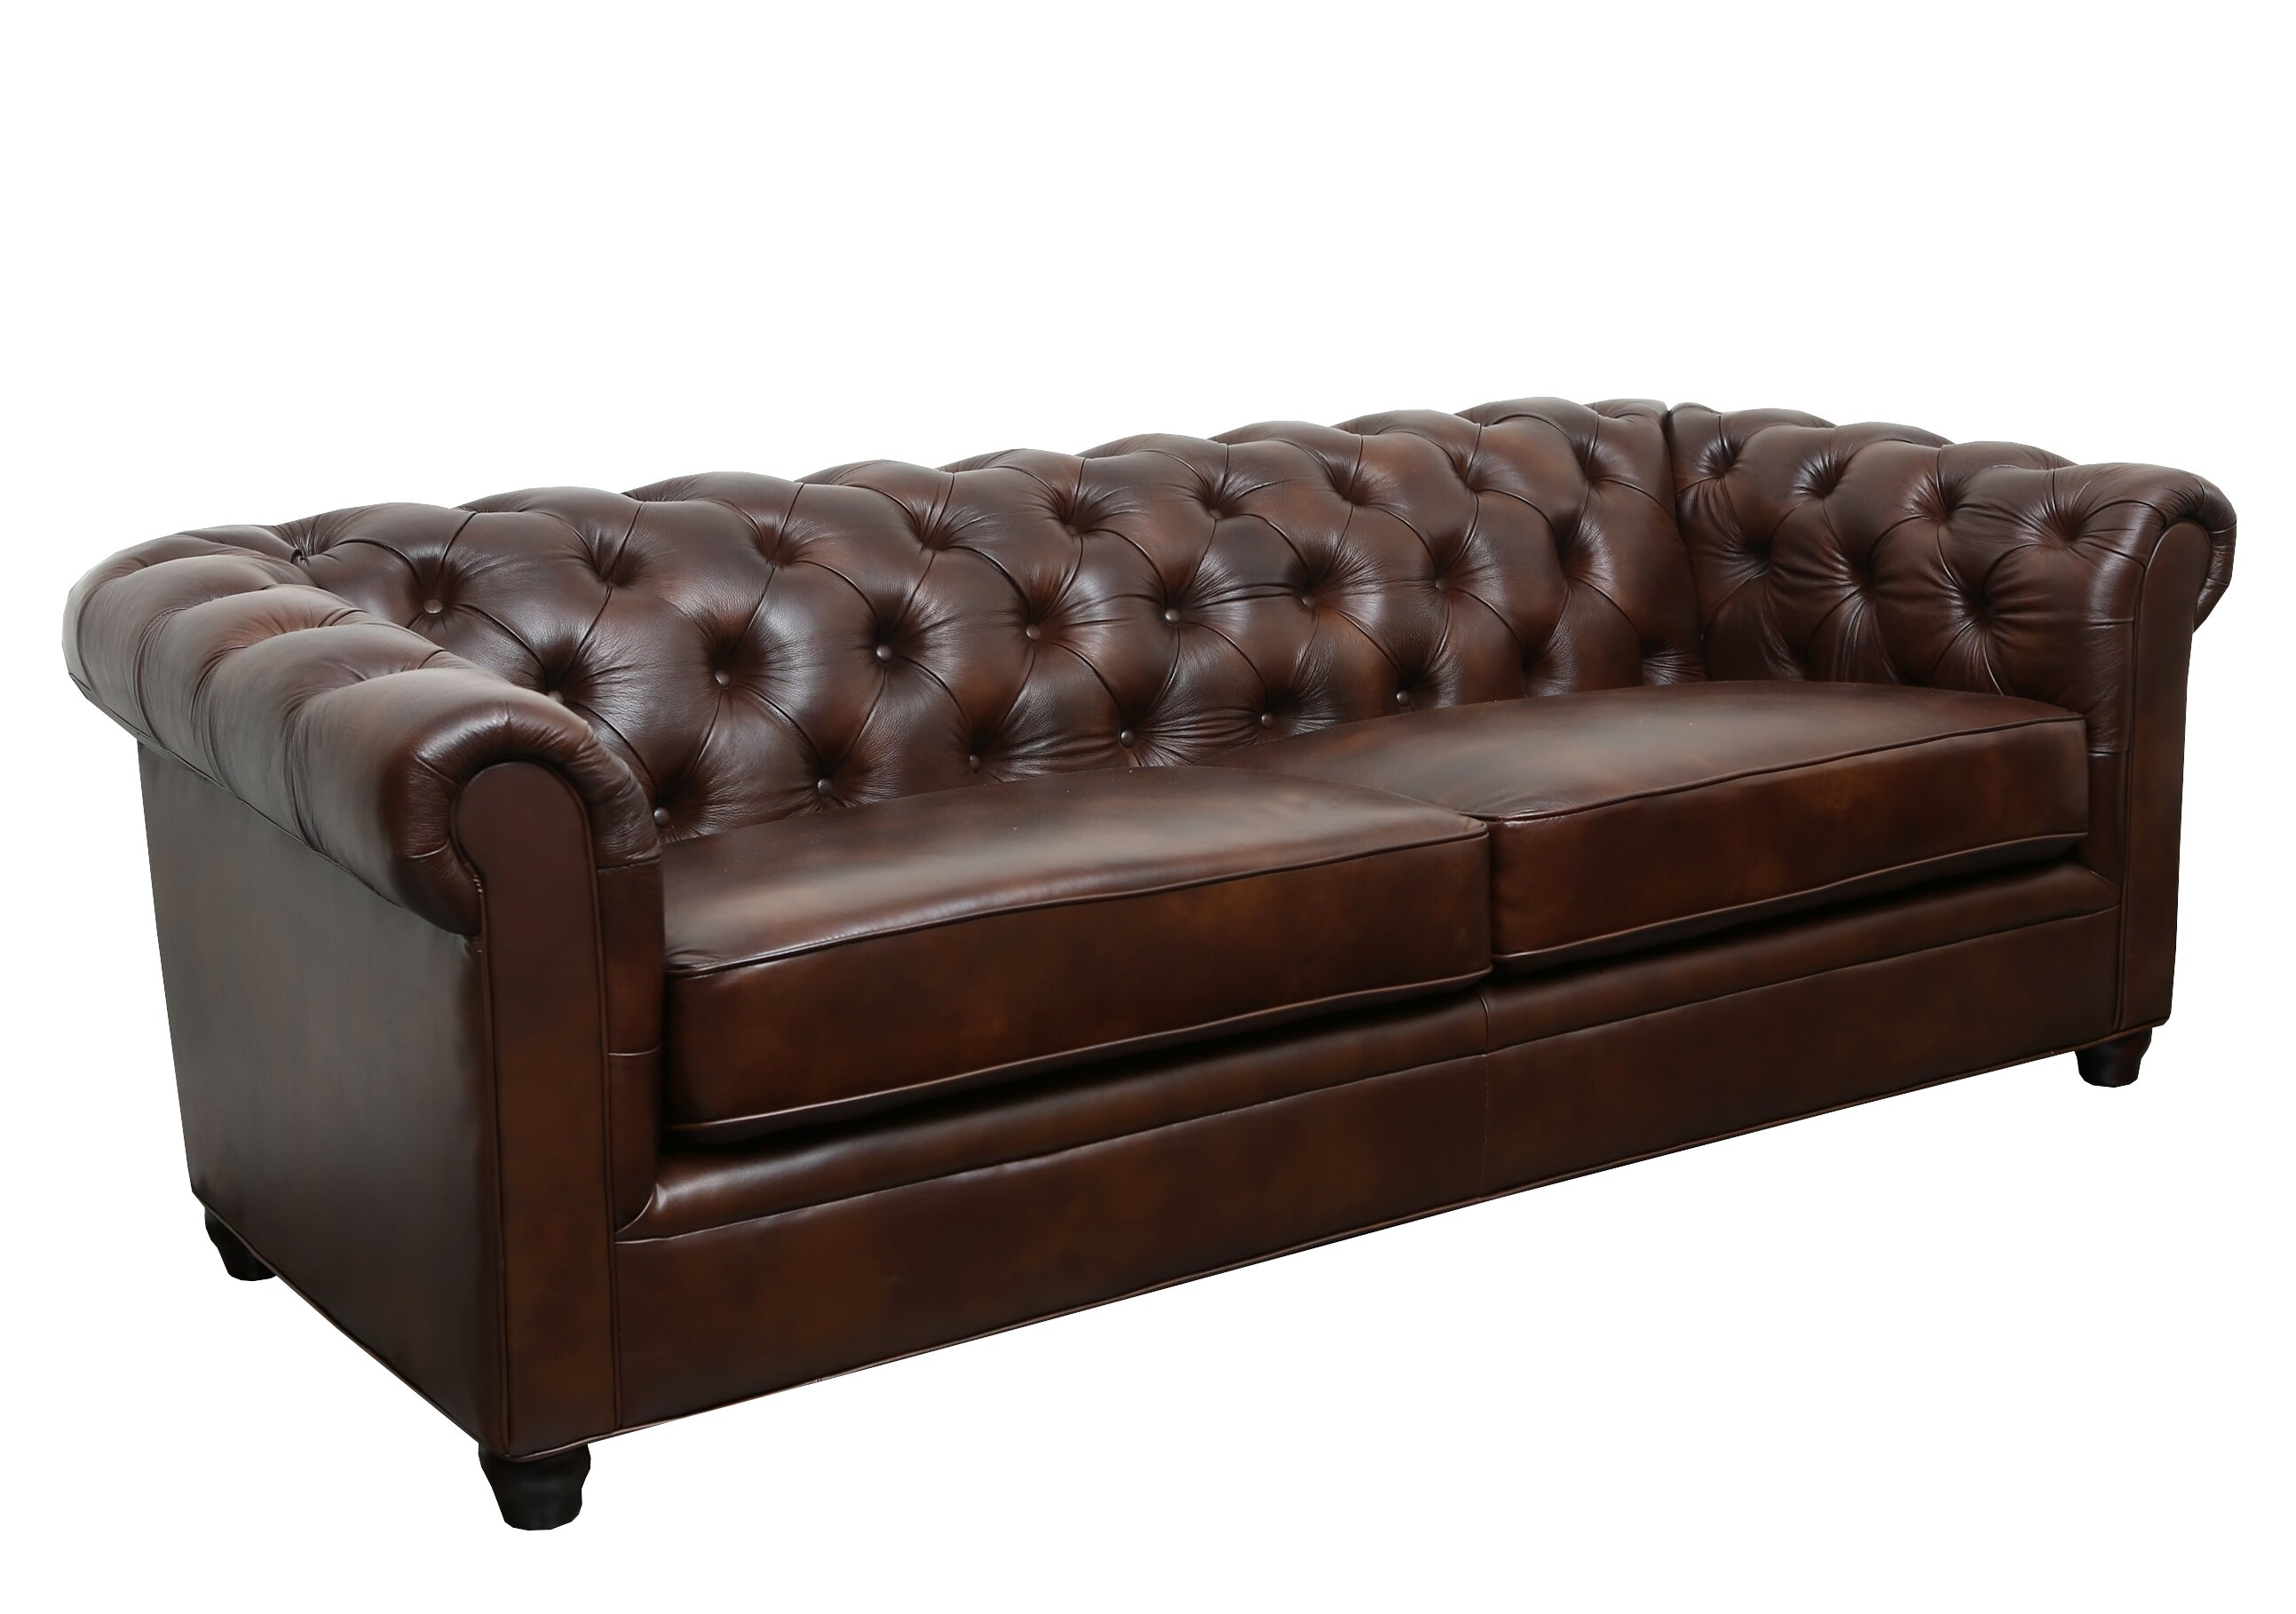 Trent Austin Design Harlem Leather Chesterfield Sofa U0026 Reviews | Wayfair